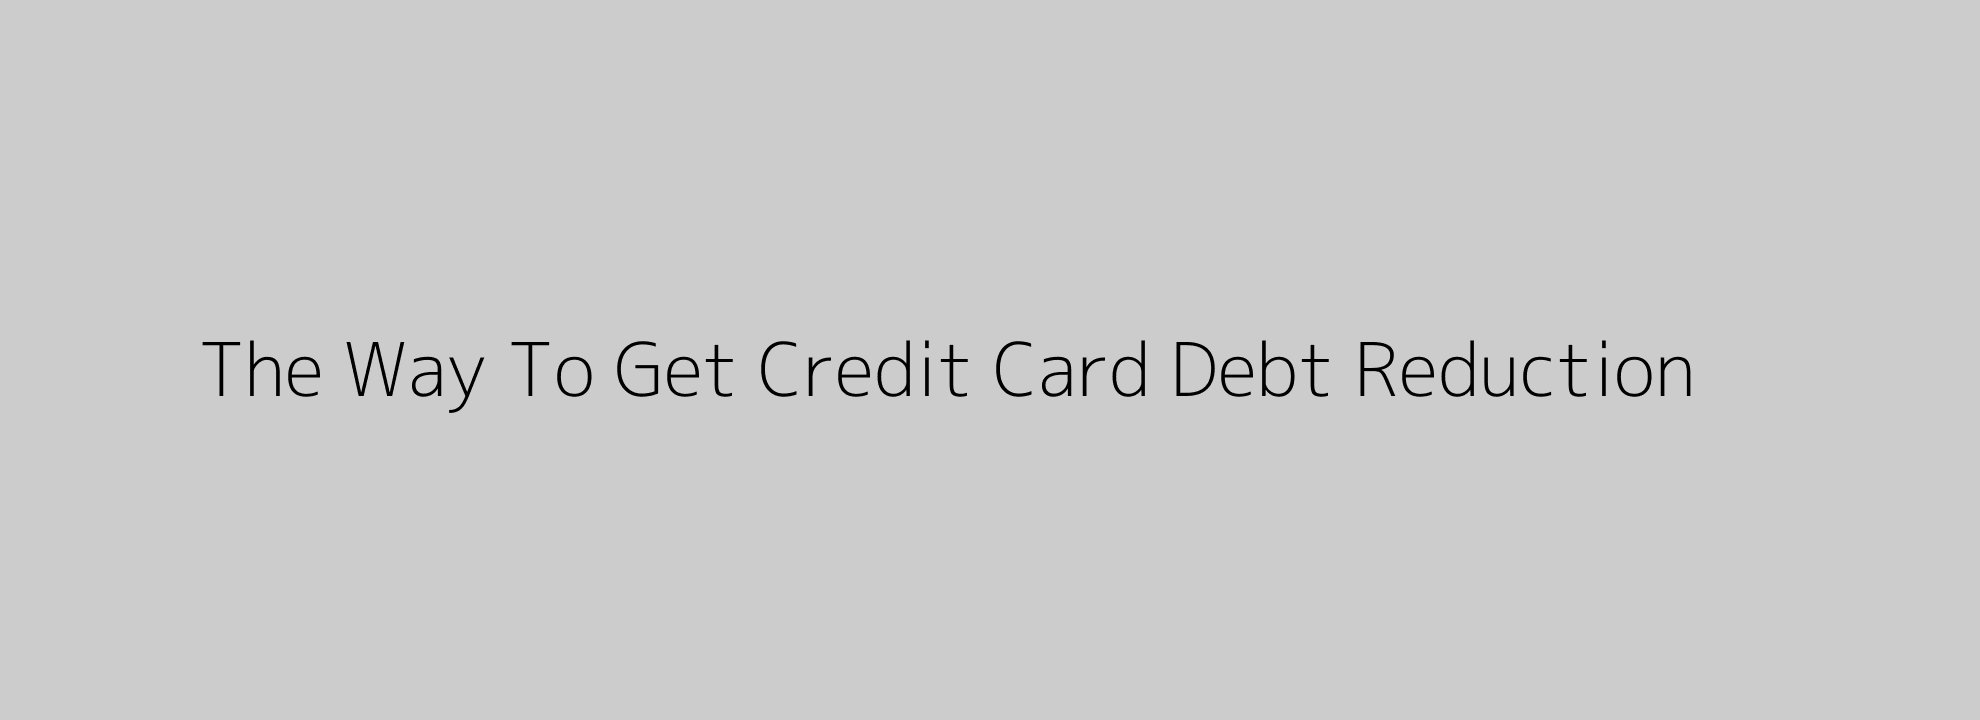 The Way To Get Credit Card Debt Reduction